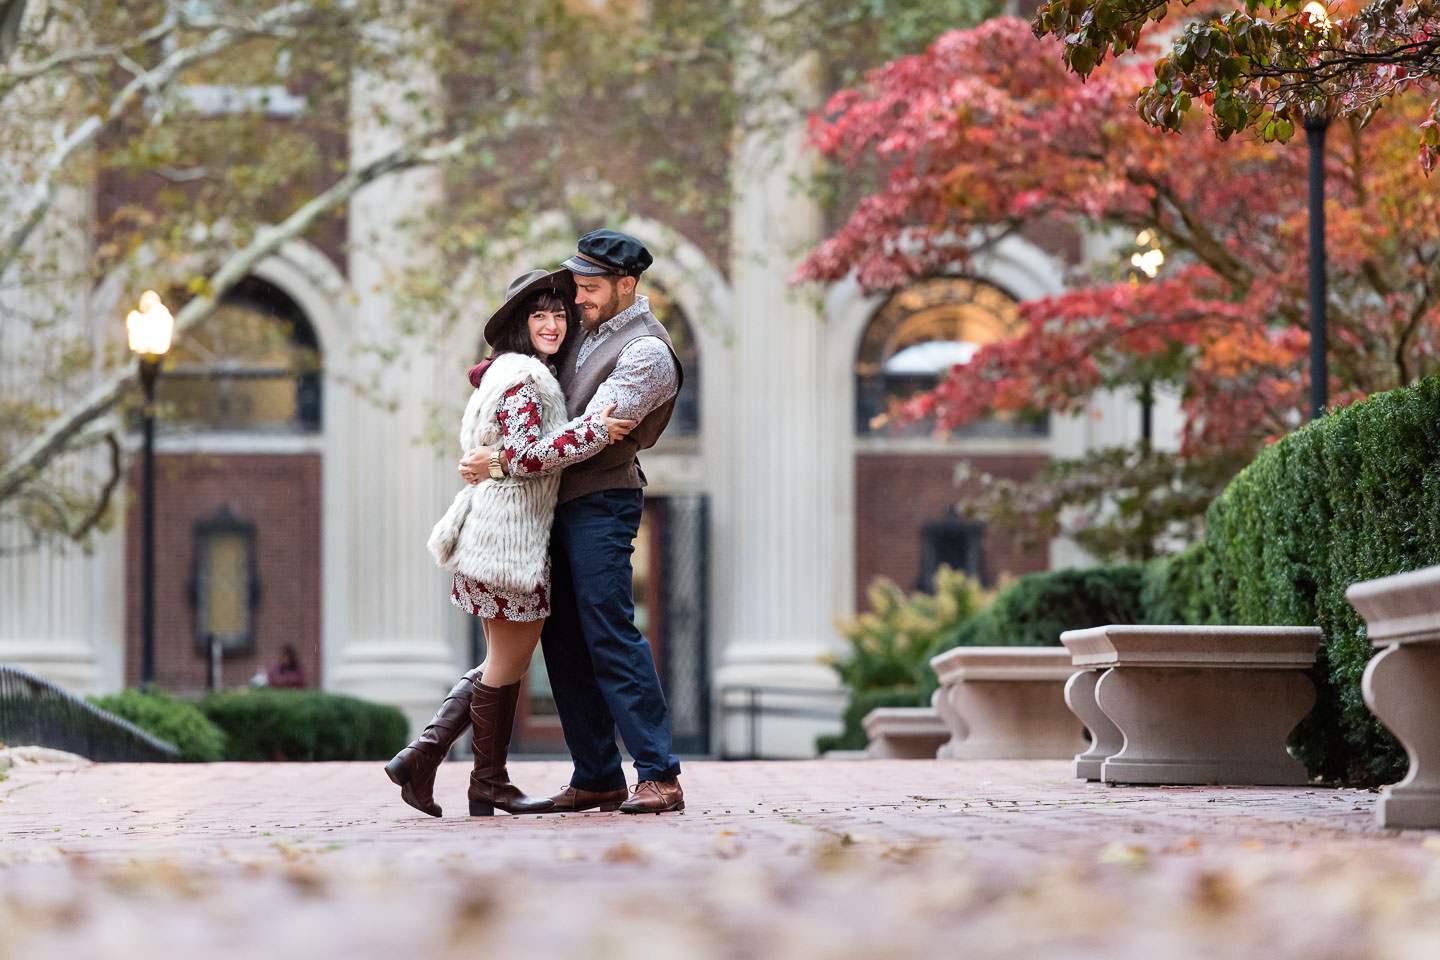 couple poses at columbia university campus in nyc during fall foliage season